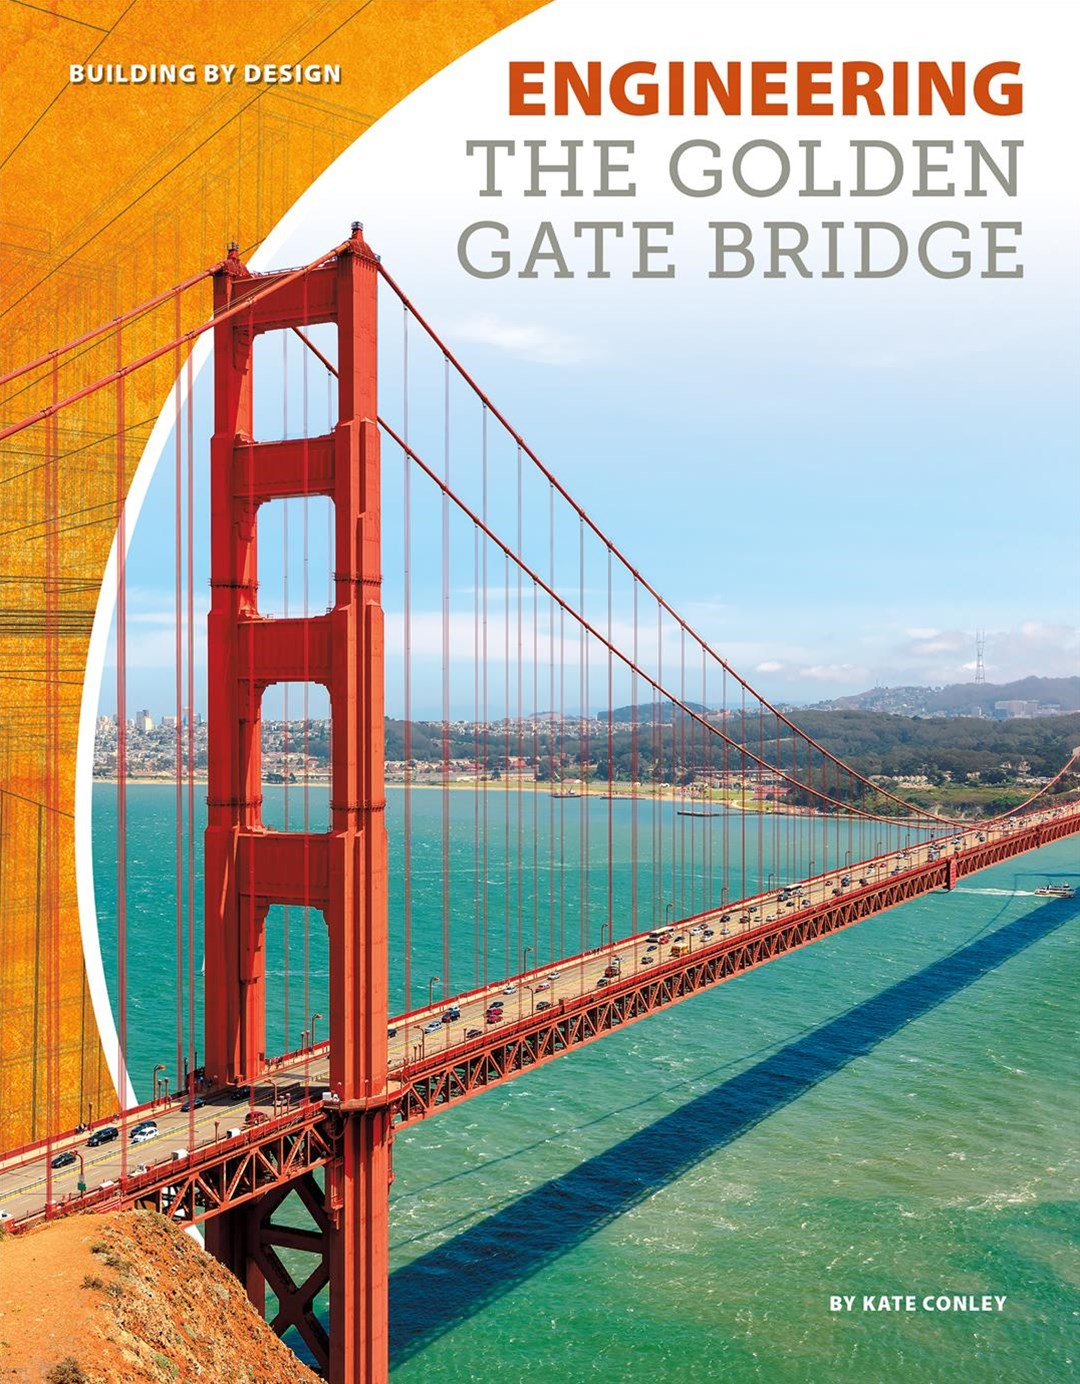 Engineering the Golden Gate Bridge